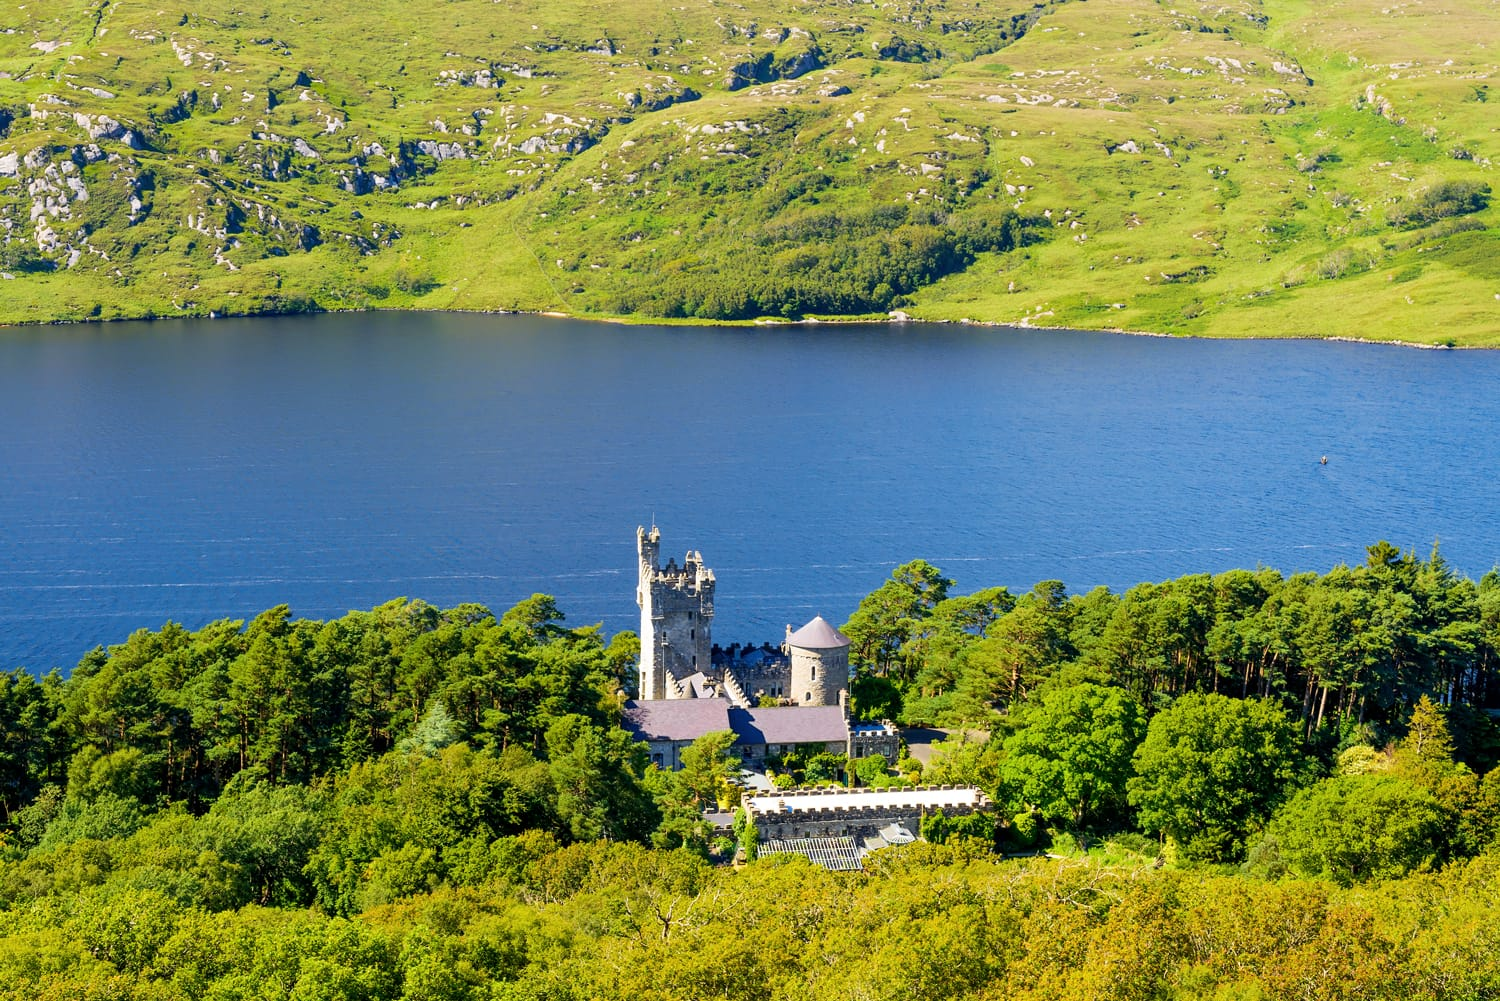 Glenveagh National Park in Ireland